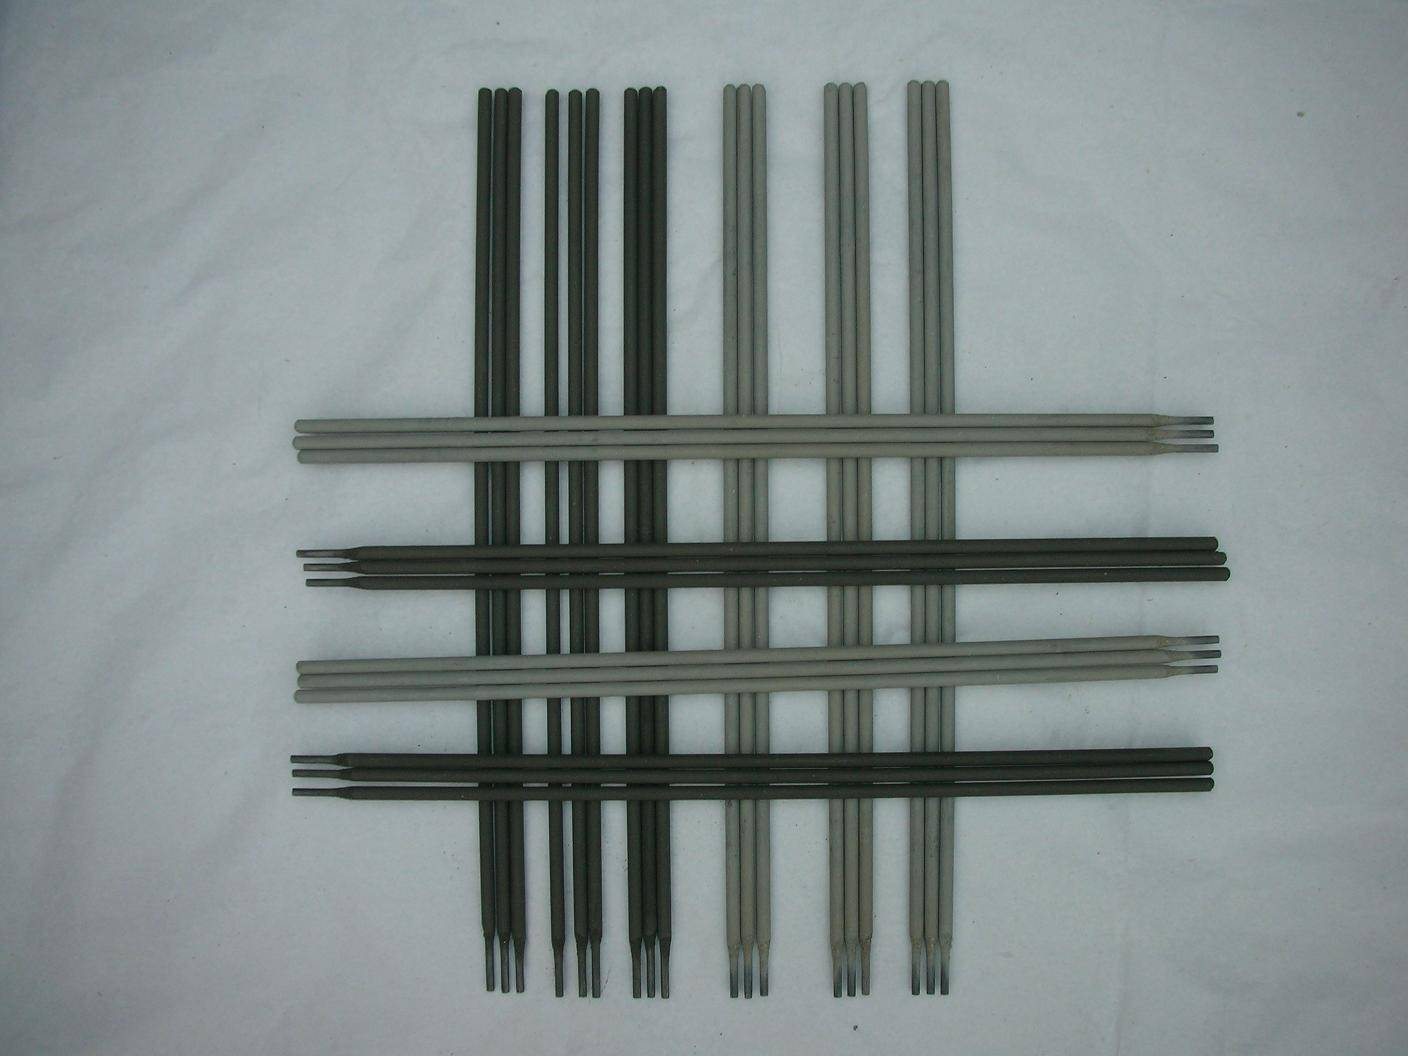 AWS E6013 Low Alloy Steel Electrode